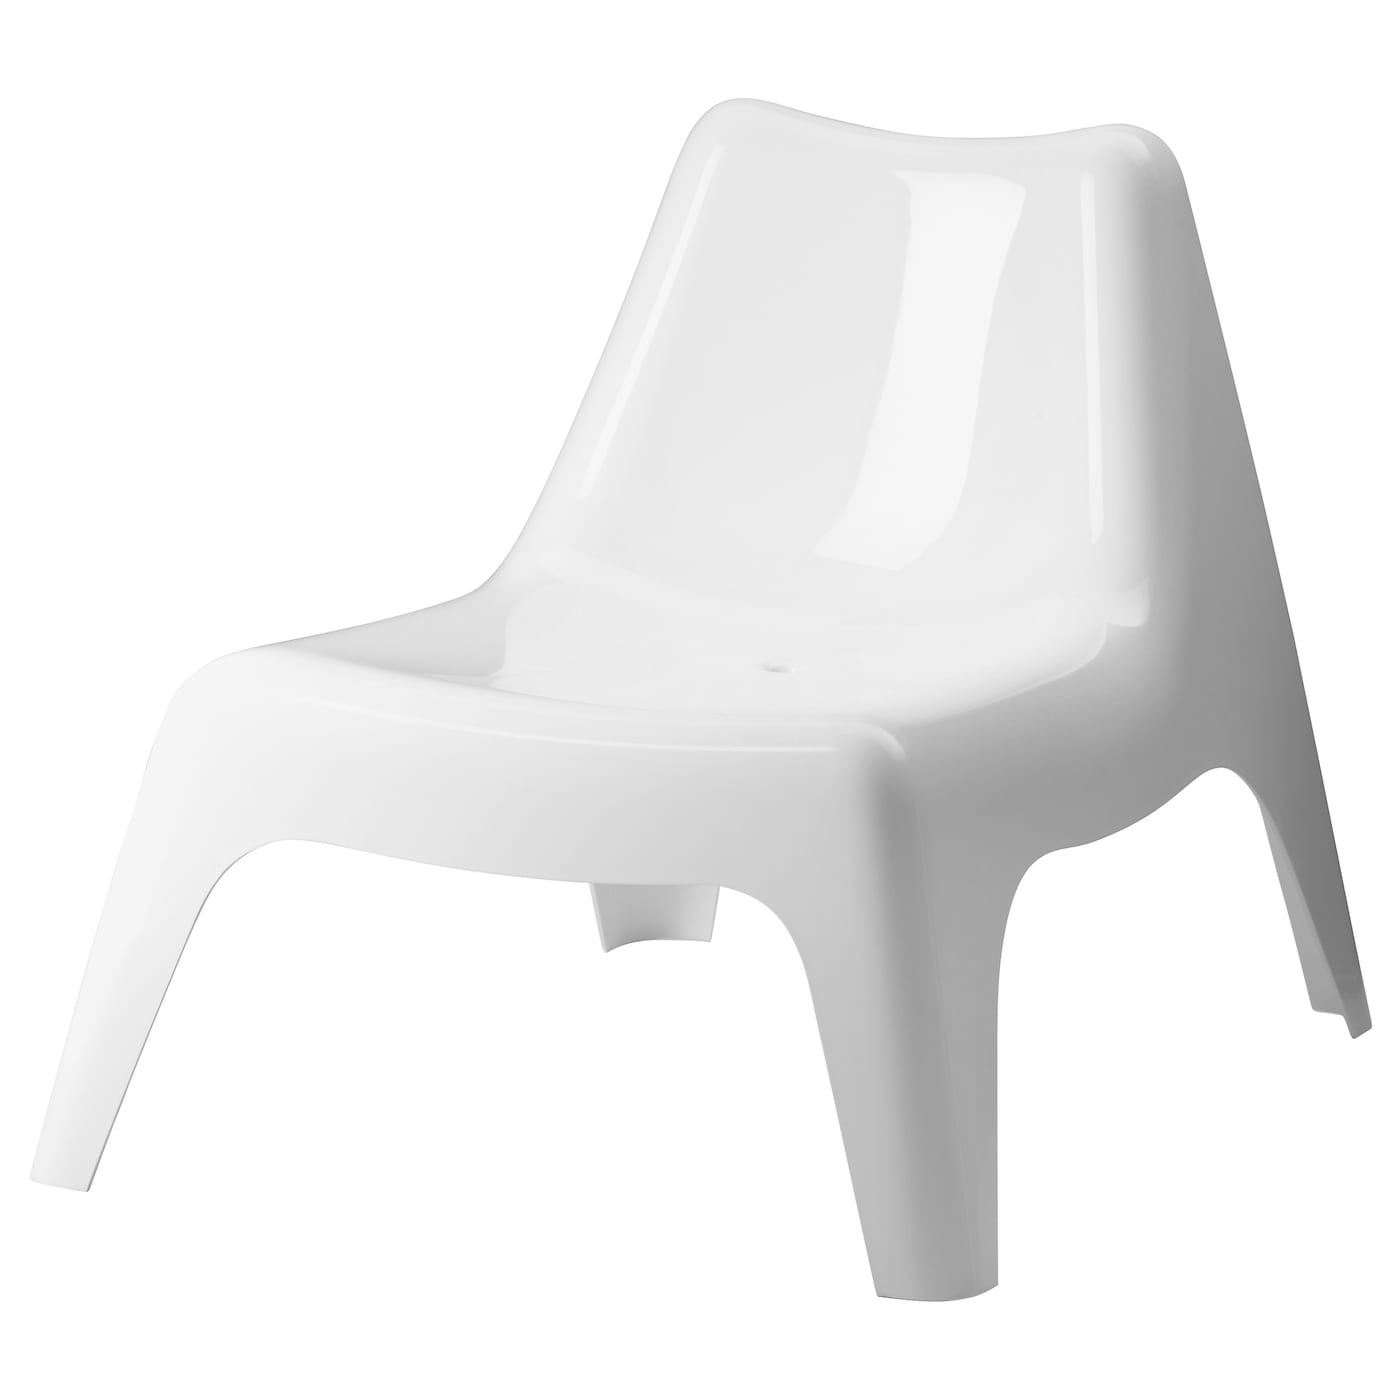 IKEA IKEA PS VÅGÖ Easy Chair, Outdoor Can Be Stacked, Which Helps You Save